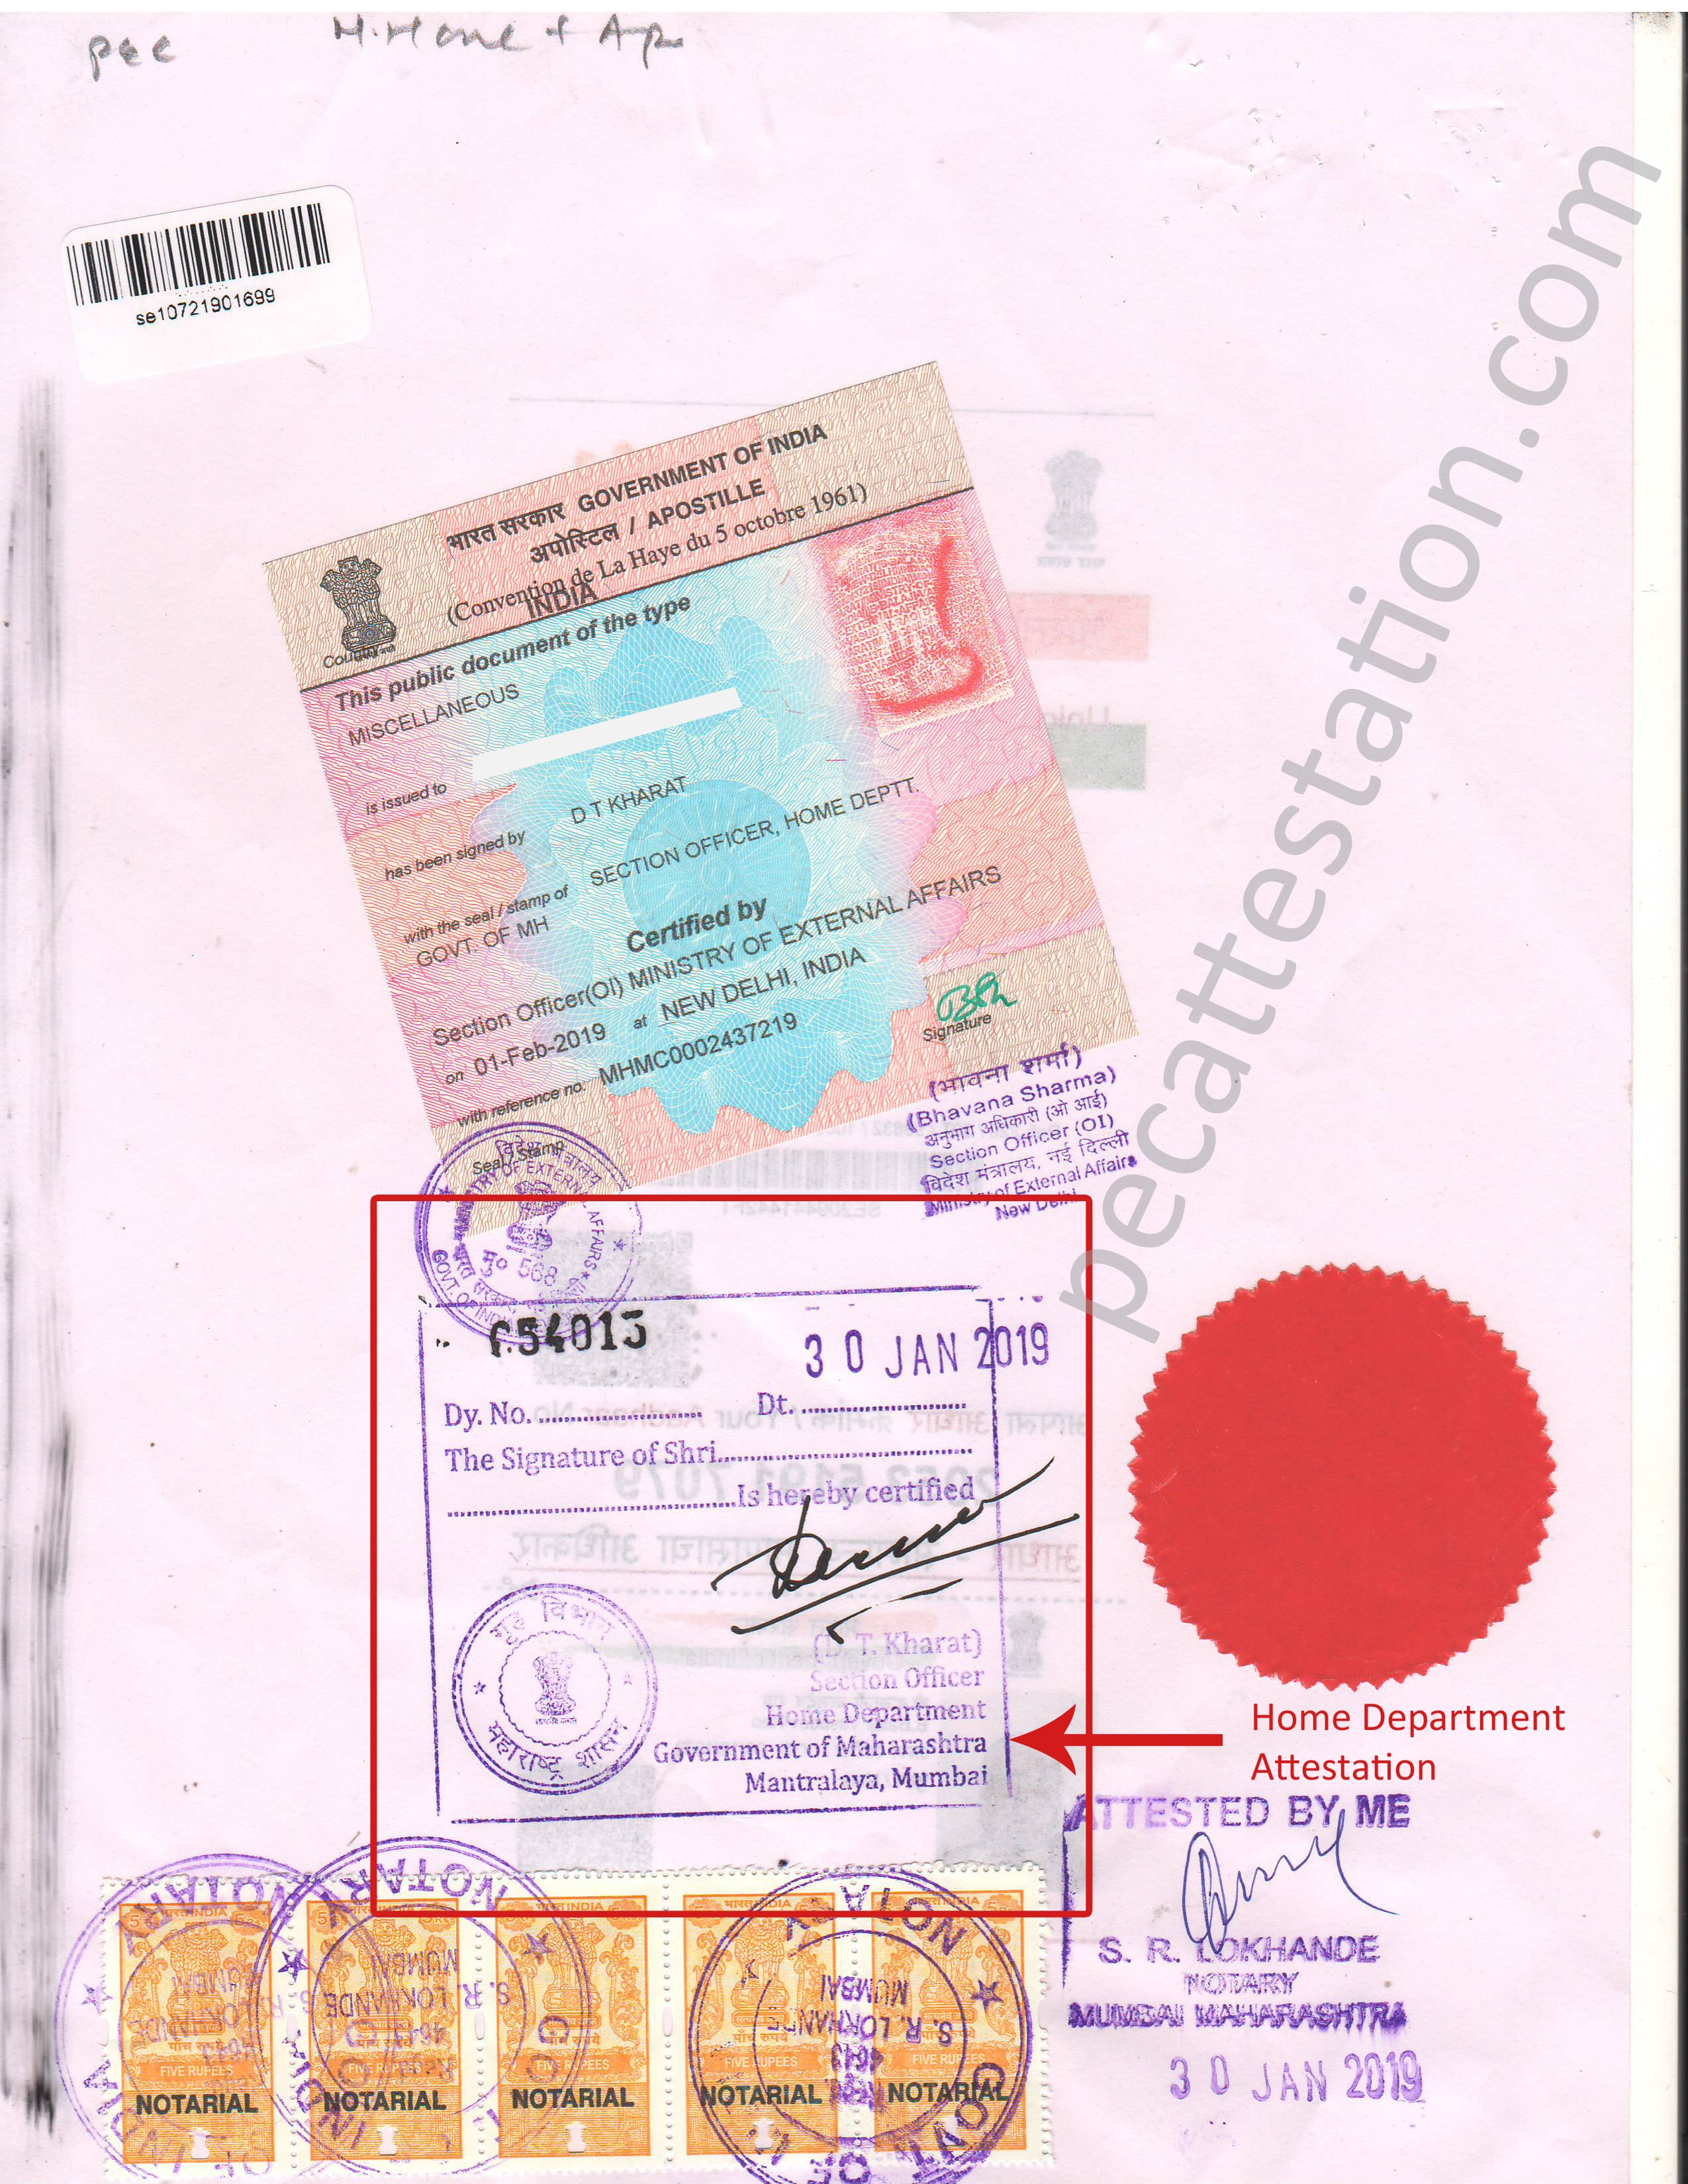 Home Department Attestation on Aadhar Card Copy